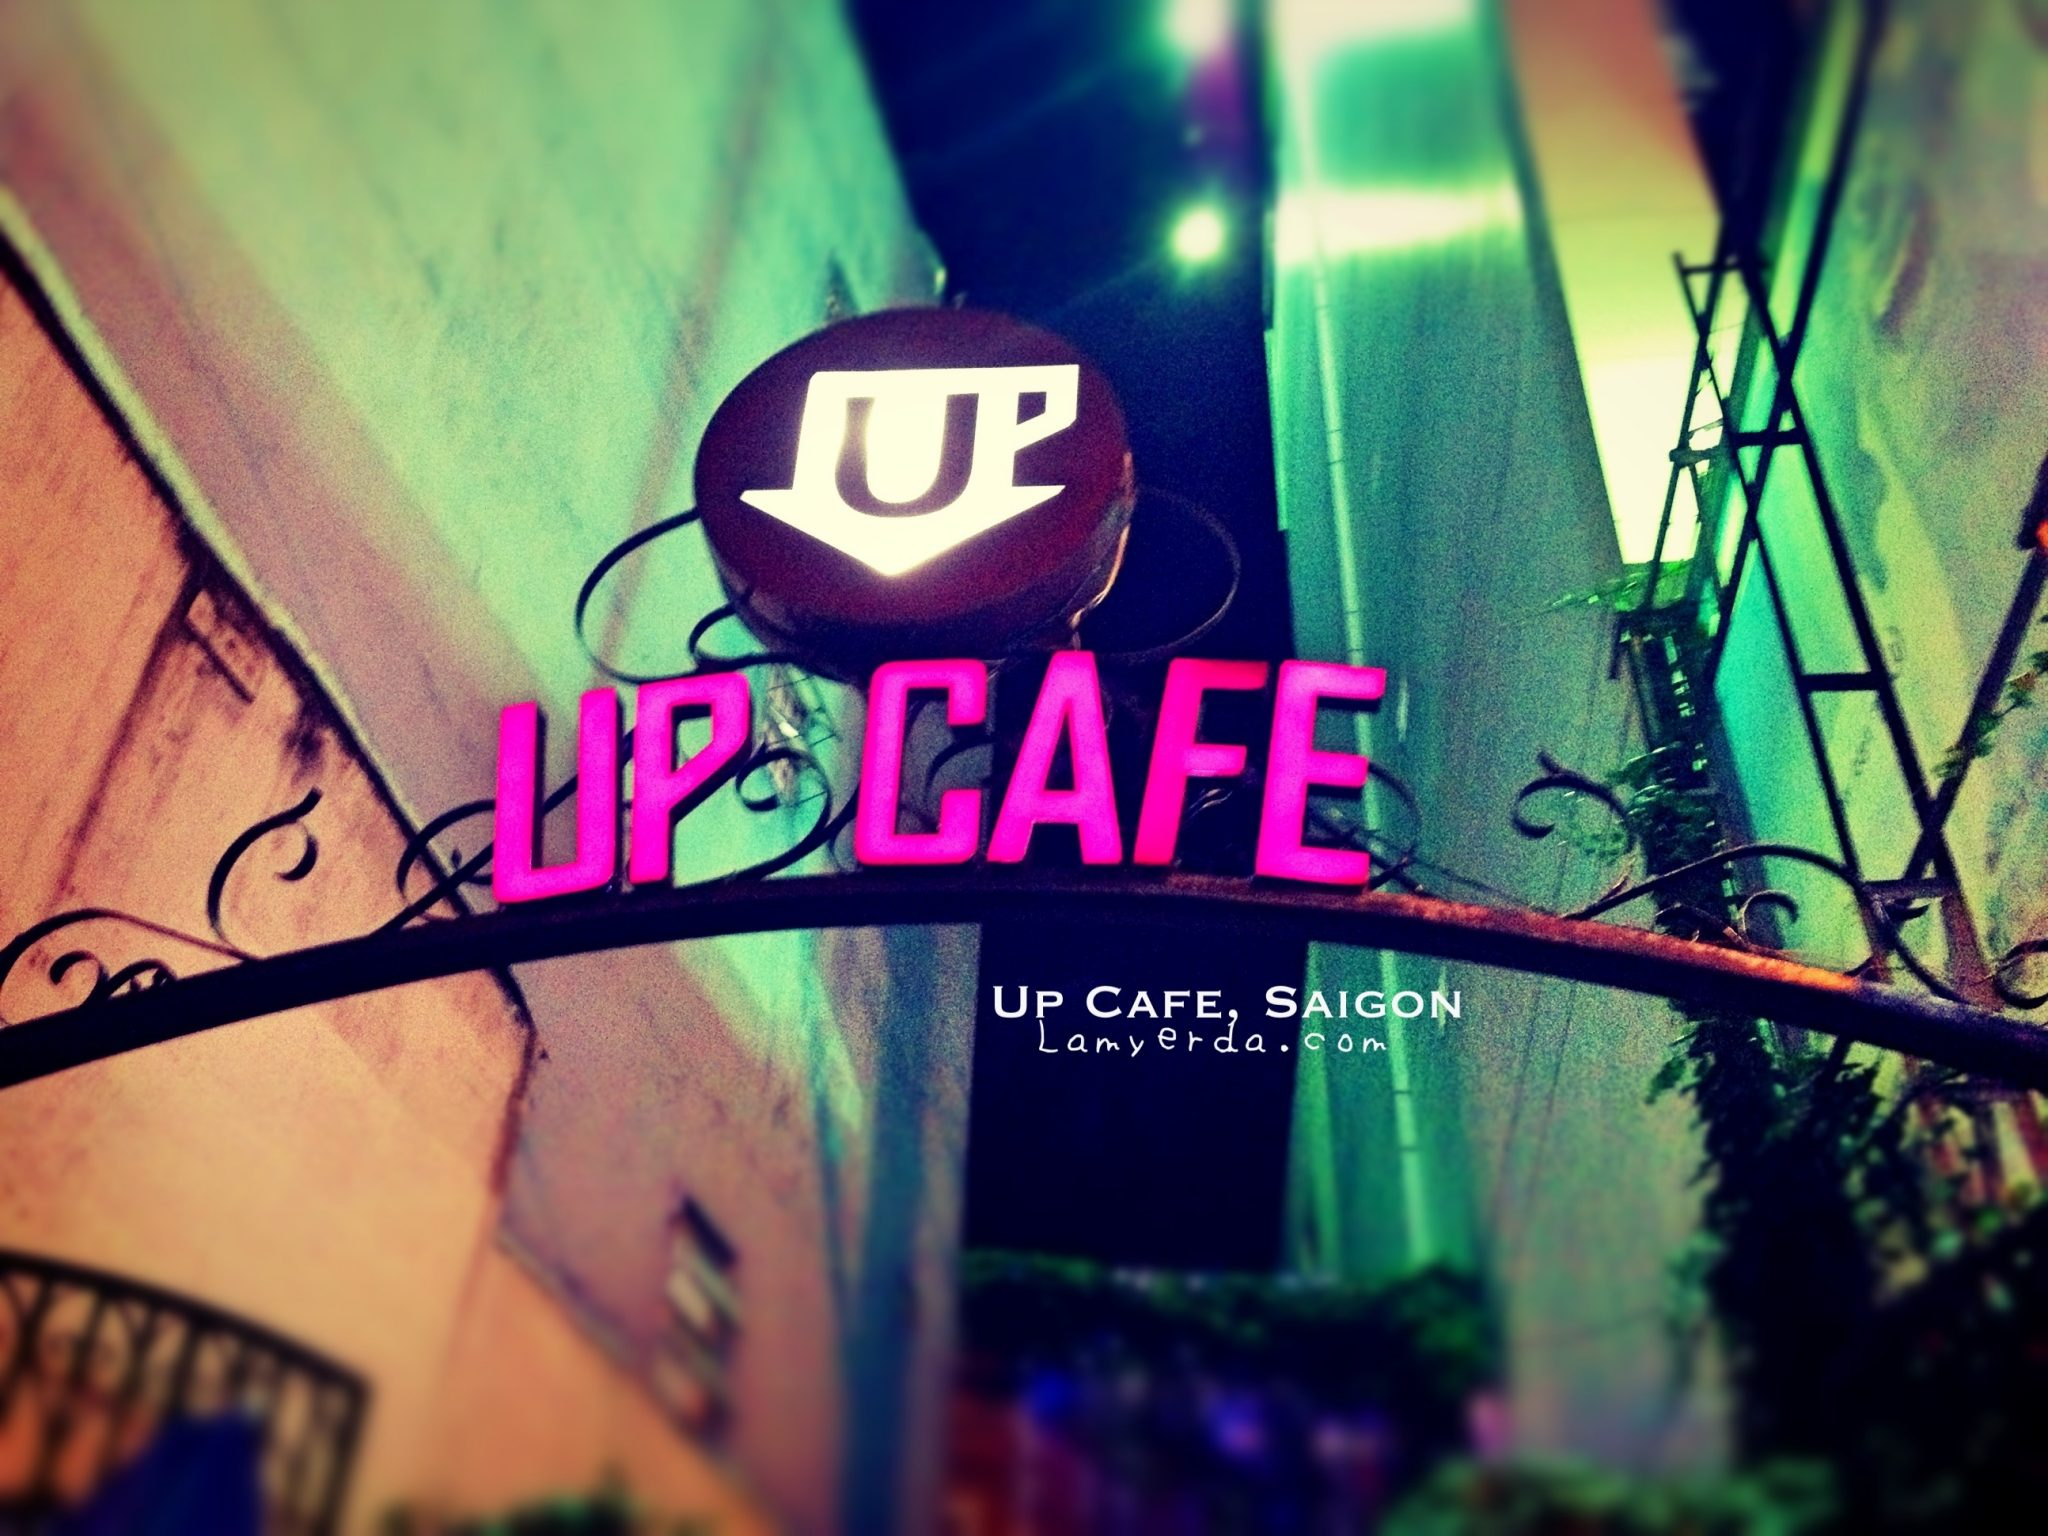 Entrance to Up Cafe